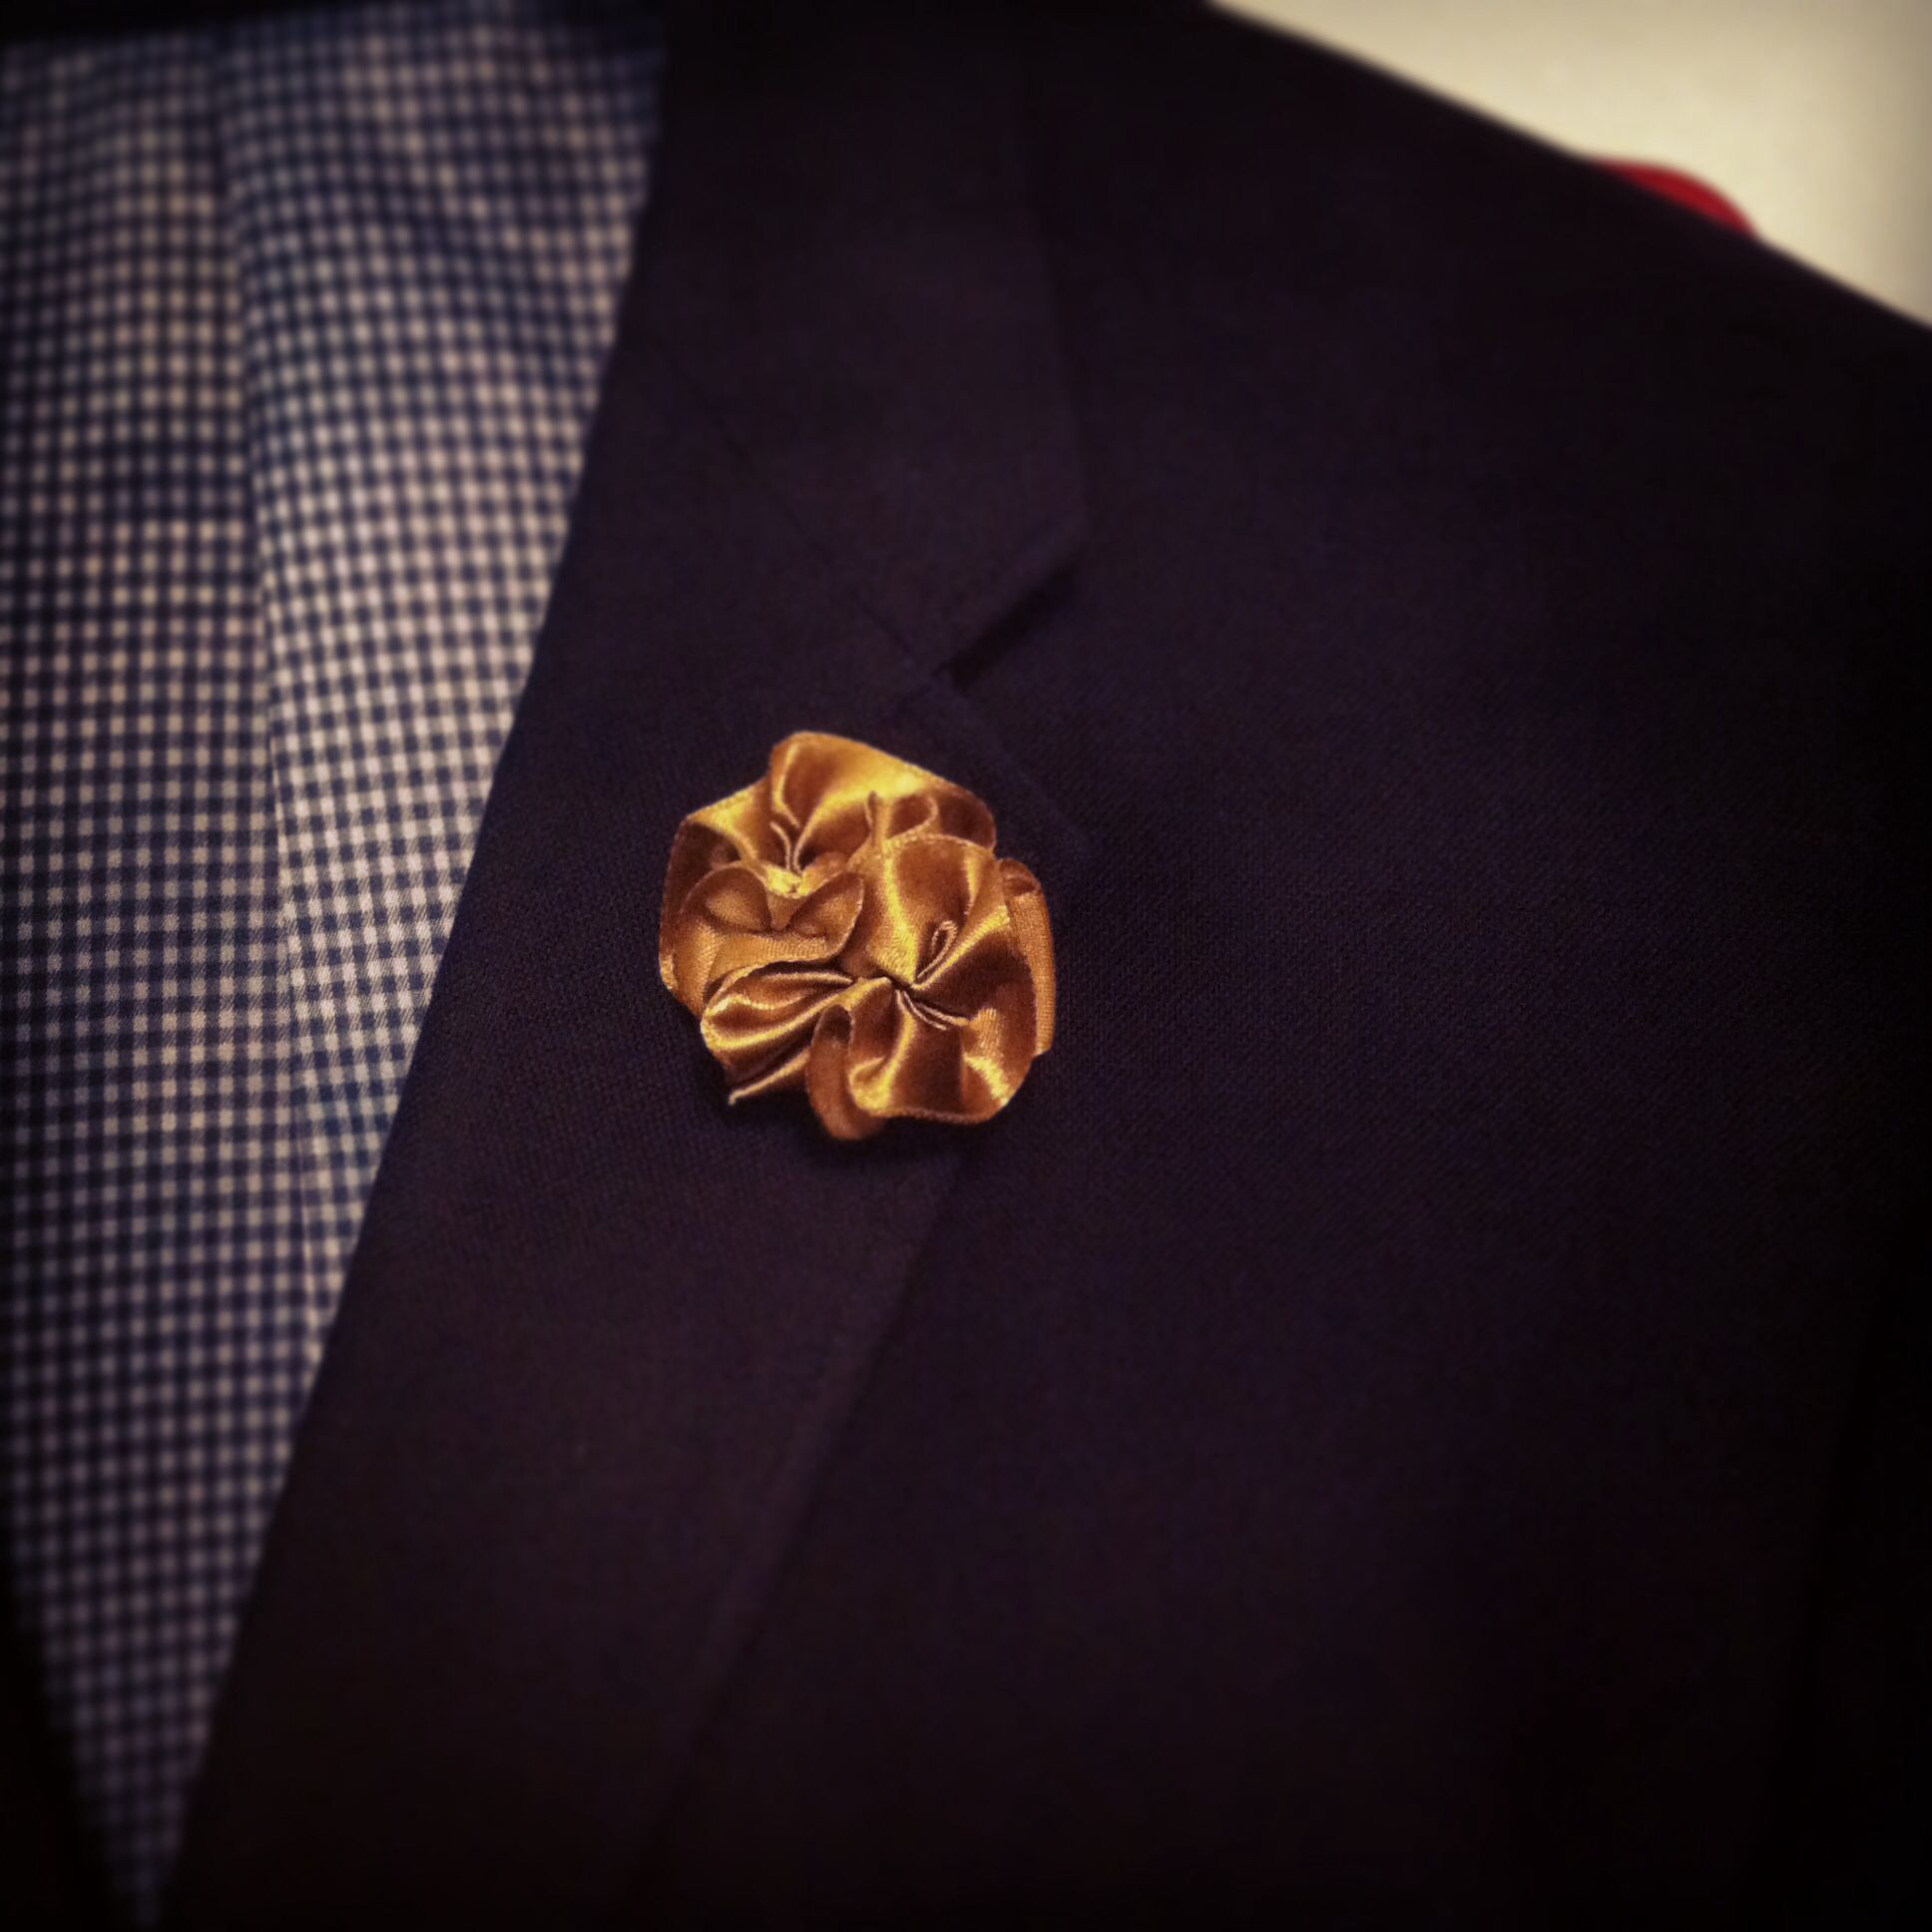 DIY Lapel Flower - satin ribbon fashioned in the shape of a